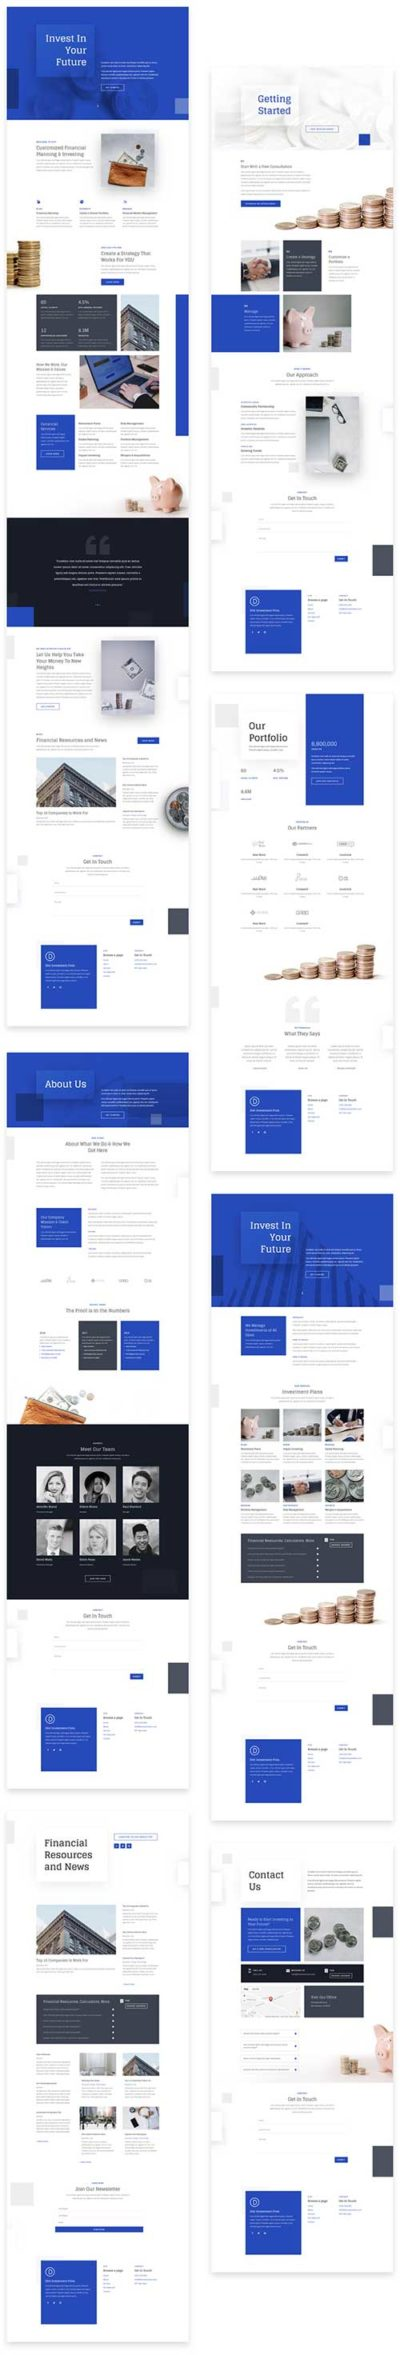 Divi investments layout pack